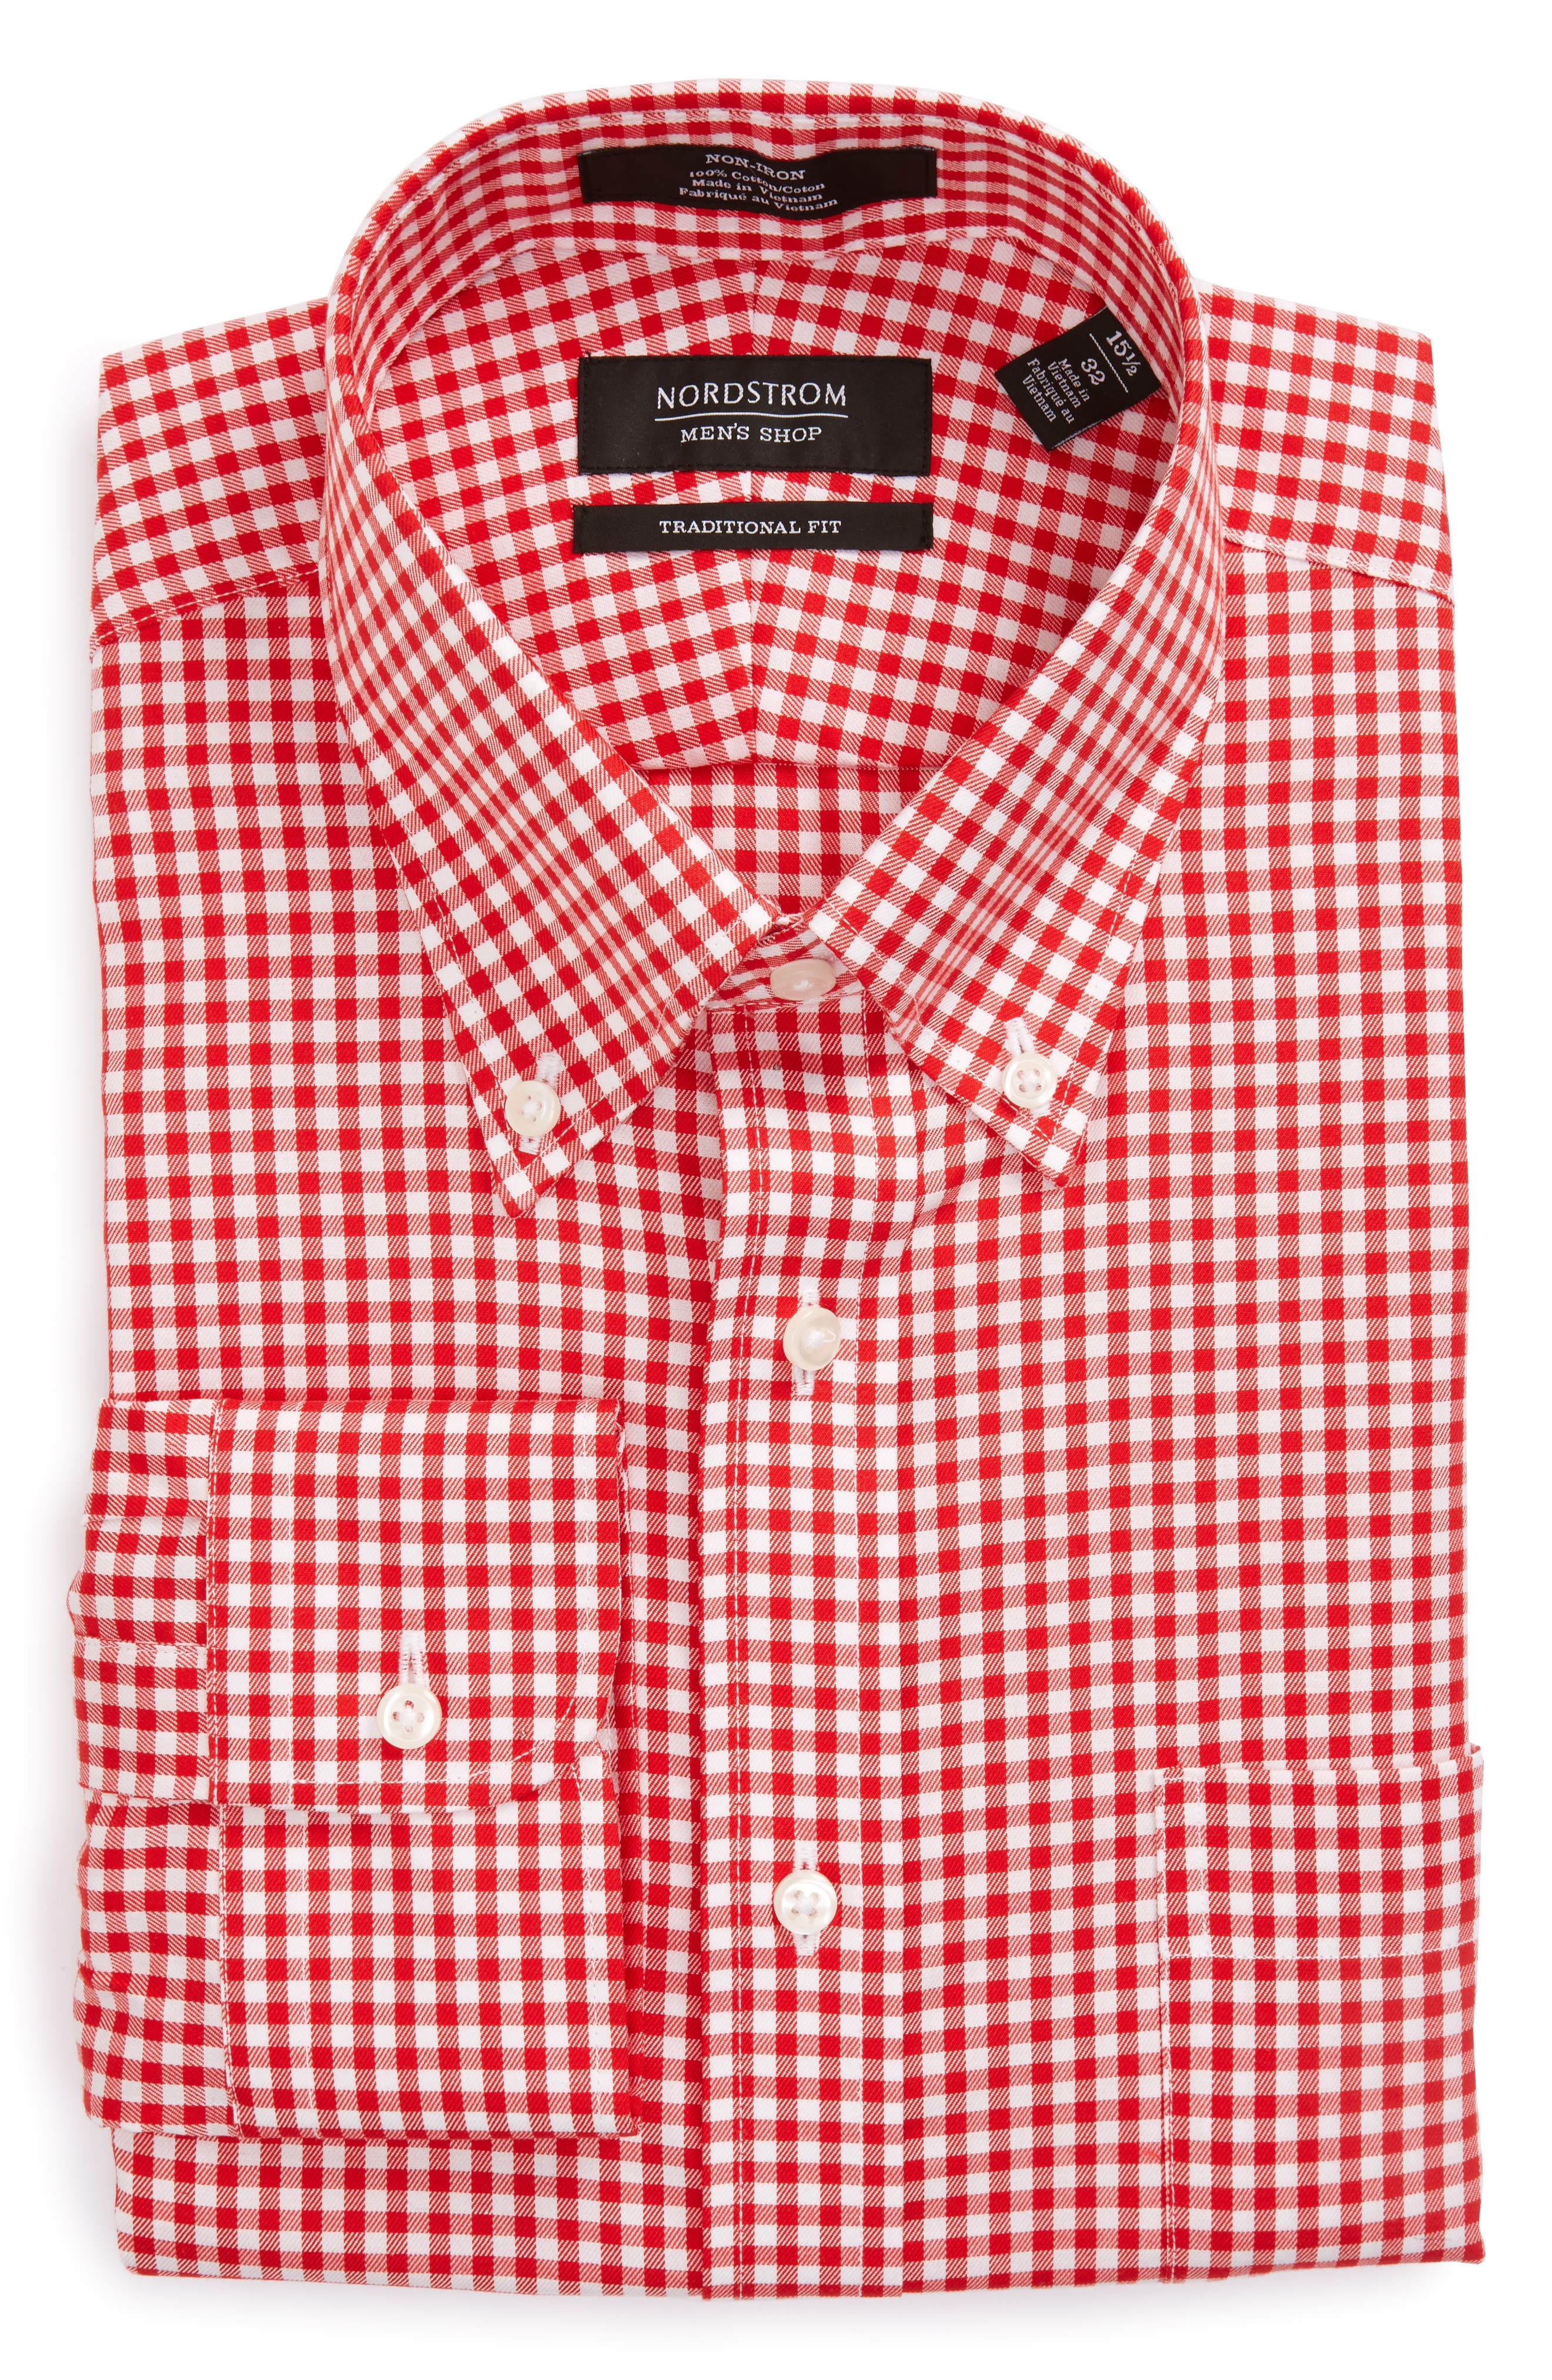 Alternate Image 1 Selected - Nordstrom Men's Shop Traditional Fit Non-Iron Gingham Dress Shirt